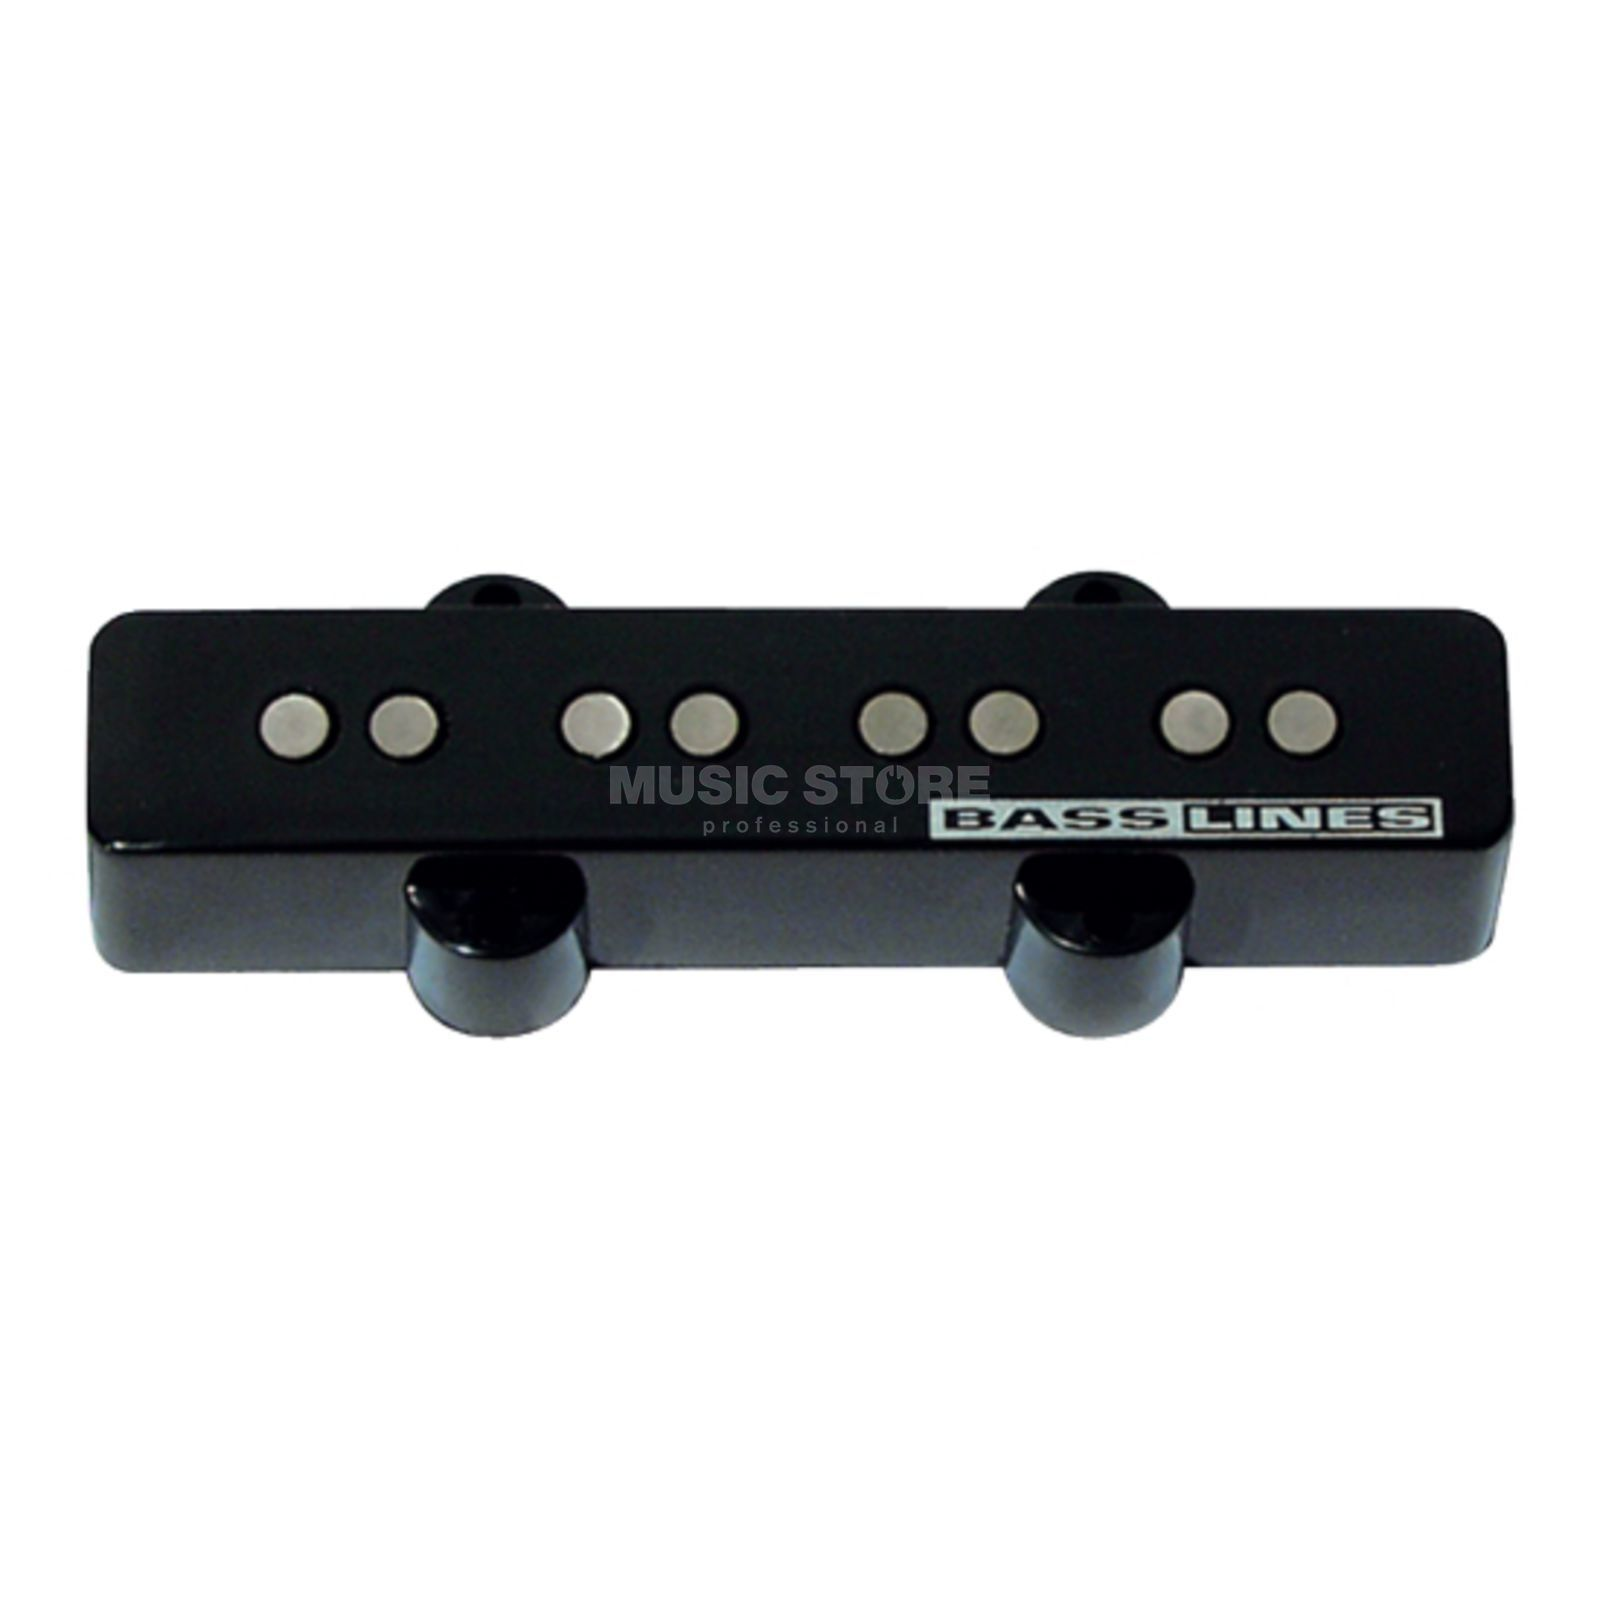 Seymour Duncan SSJB-2B Hot Jazz Bass Bridge Bridge Black 2-phase Product Image